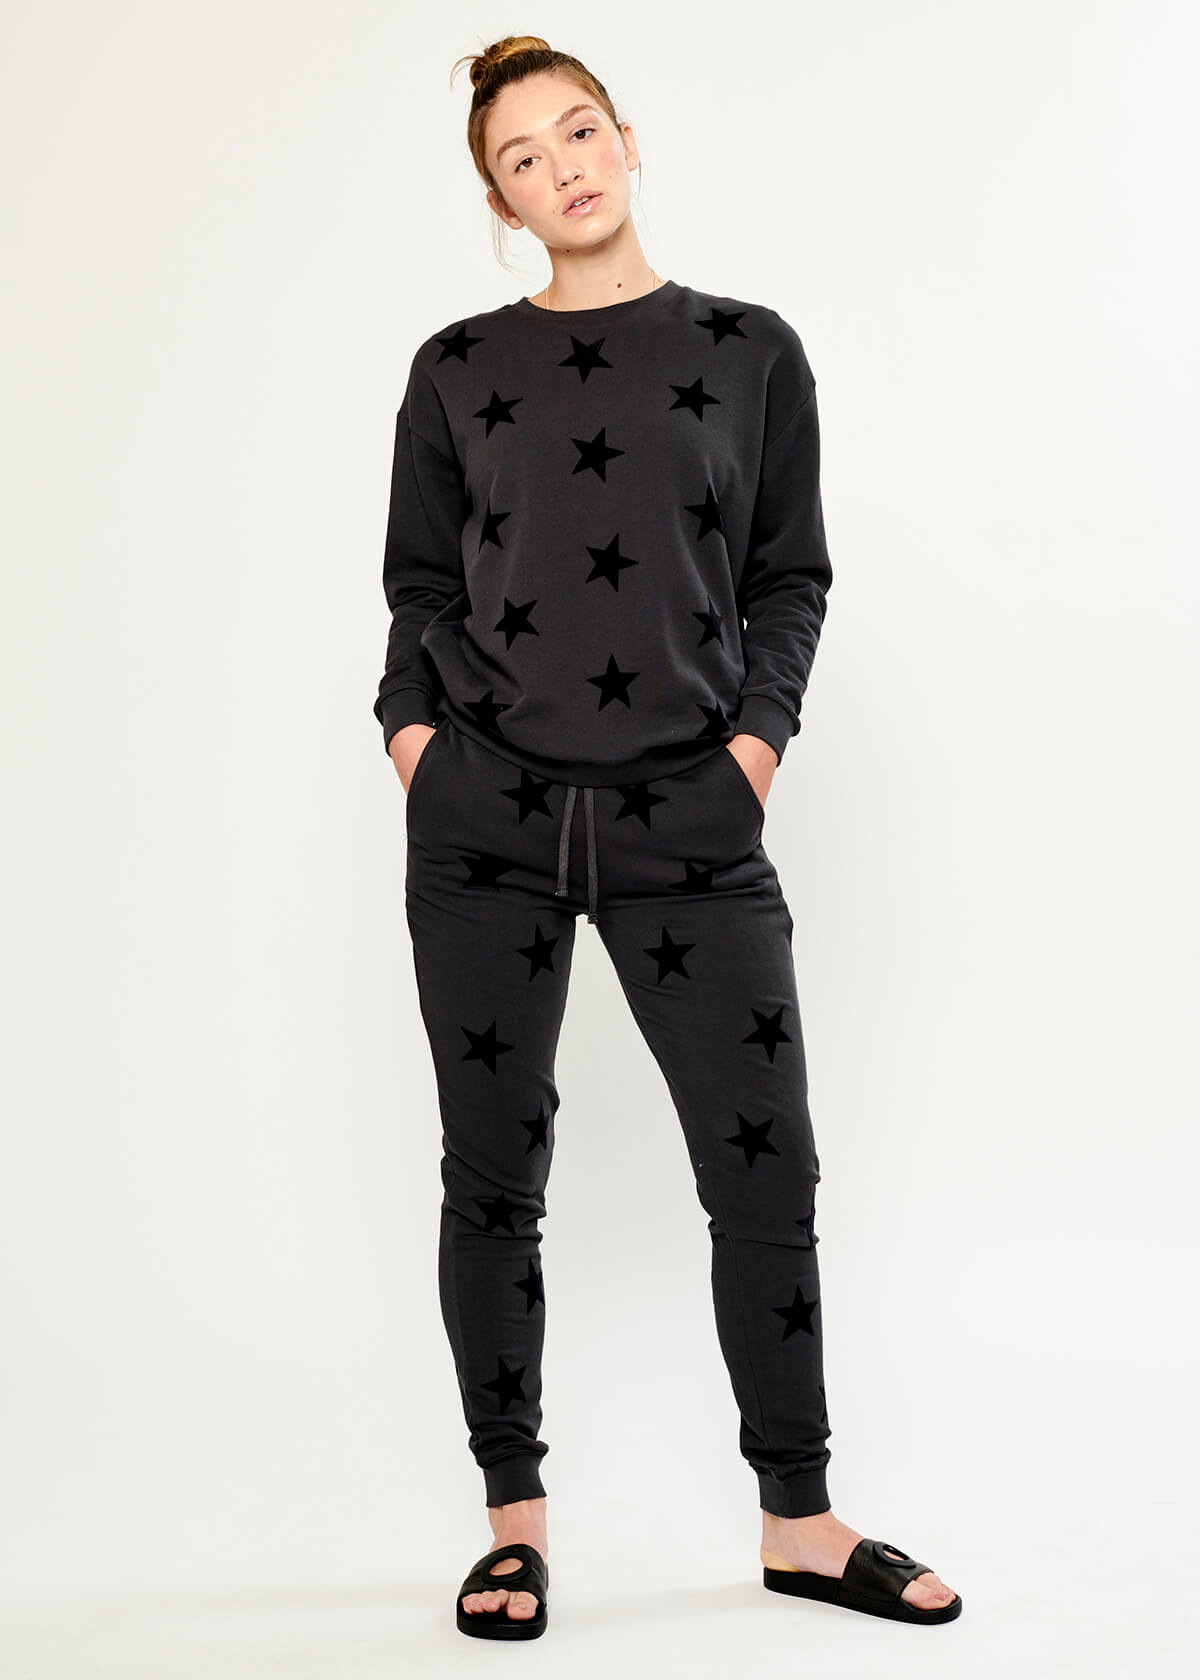 Lucy - Sweatpant - Super Star - Black